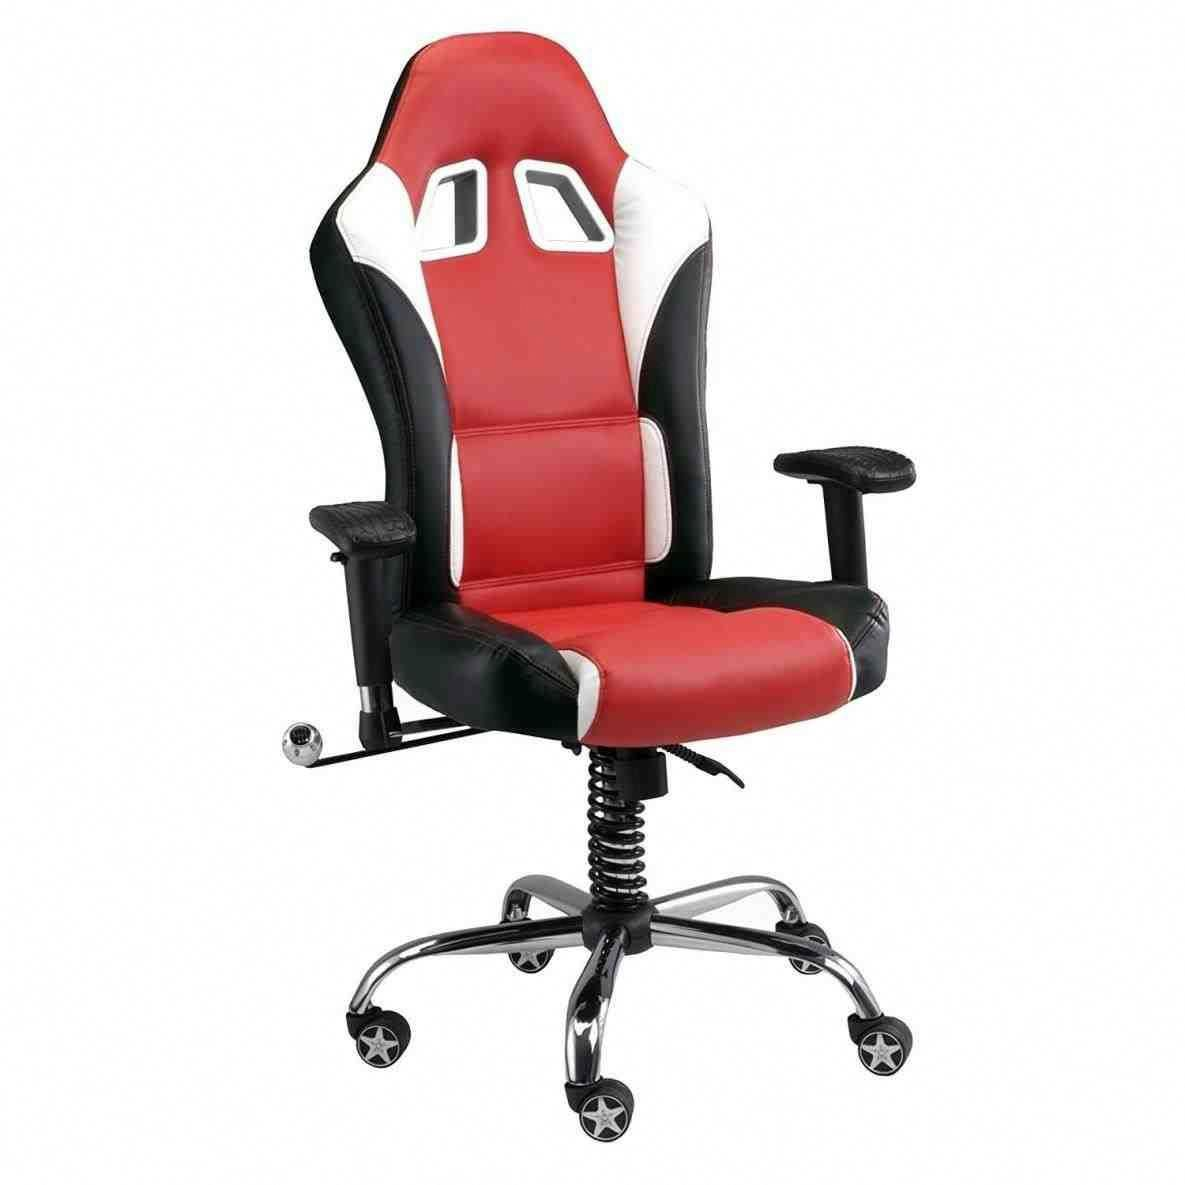 red desk chair staples covers rental vancouver cheap office chairs beautiful ameriwood mamamommymom shop furniture luxury fice